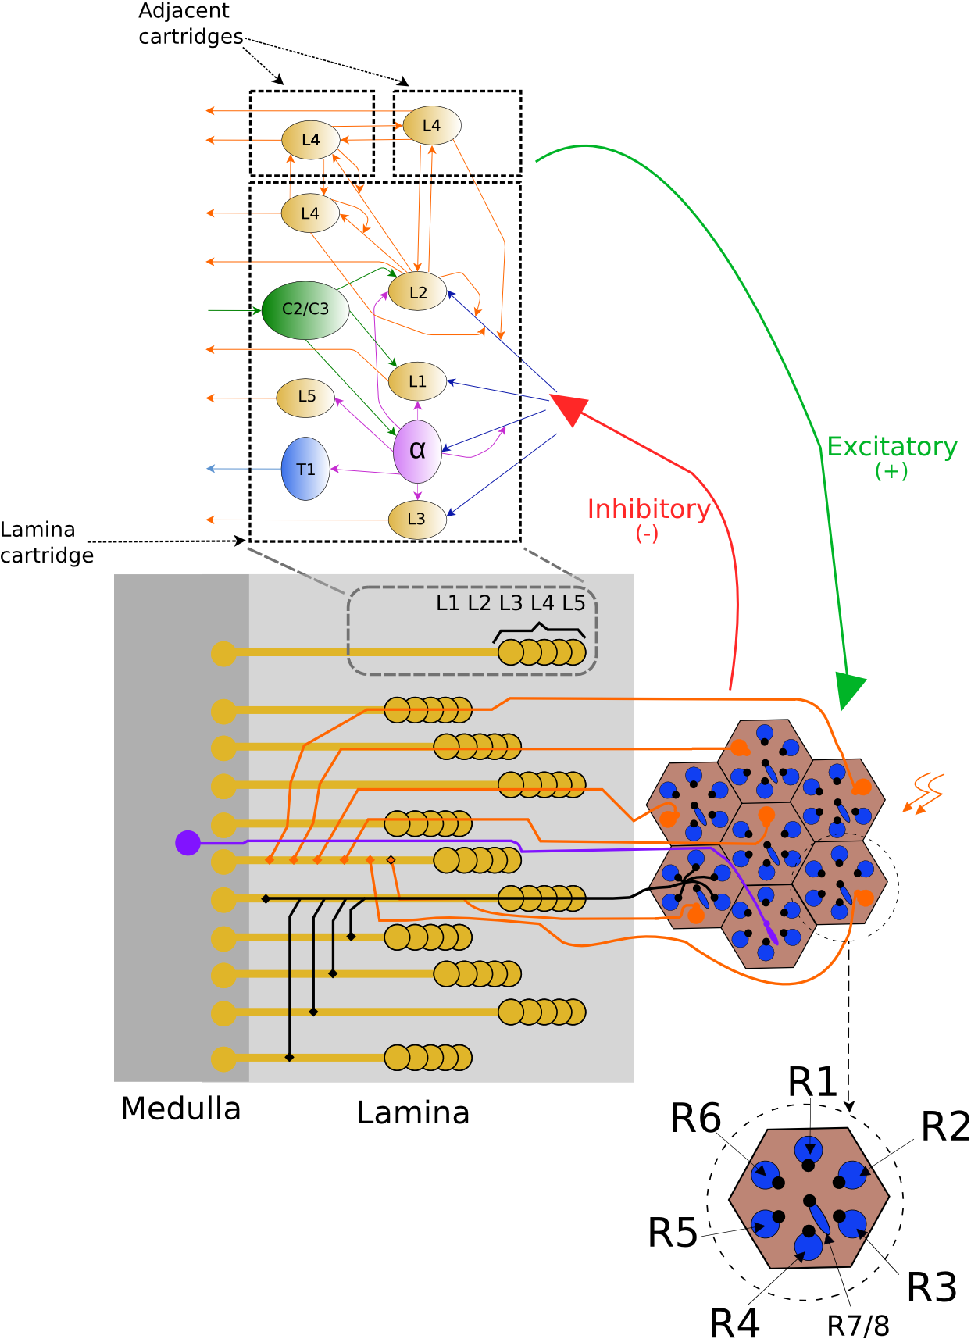 Fig. 2.3 Drosophila's Retina/Lamina connectome. This figure shows the Retina/Lamina interconnection and the Lamina network. The top part of the figure displays a synaptic signalling diagram that presents the information flow in the Lamina.Each Lamina cartridge is composed of Large monopolar (L), Centrifugal (C), Tangential (T) and Amacrine (α) cells. In the middle part of the figure, the neural superposition of the photoreceptors is shown. This part shows that photoreceptors with the same target in the lamina are located in neighboring ommatidia. The red and green arrows that connect the top with the middle part of the figure indicate that there is a bidirectional communication between Retina and Lamina. Finally, the bottom part of the figure shows in more detail the components of each ommatidium.